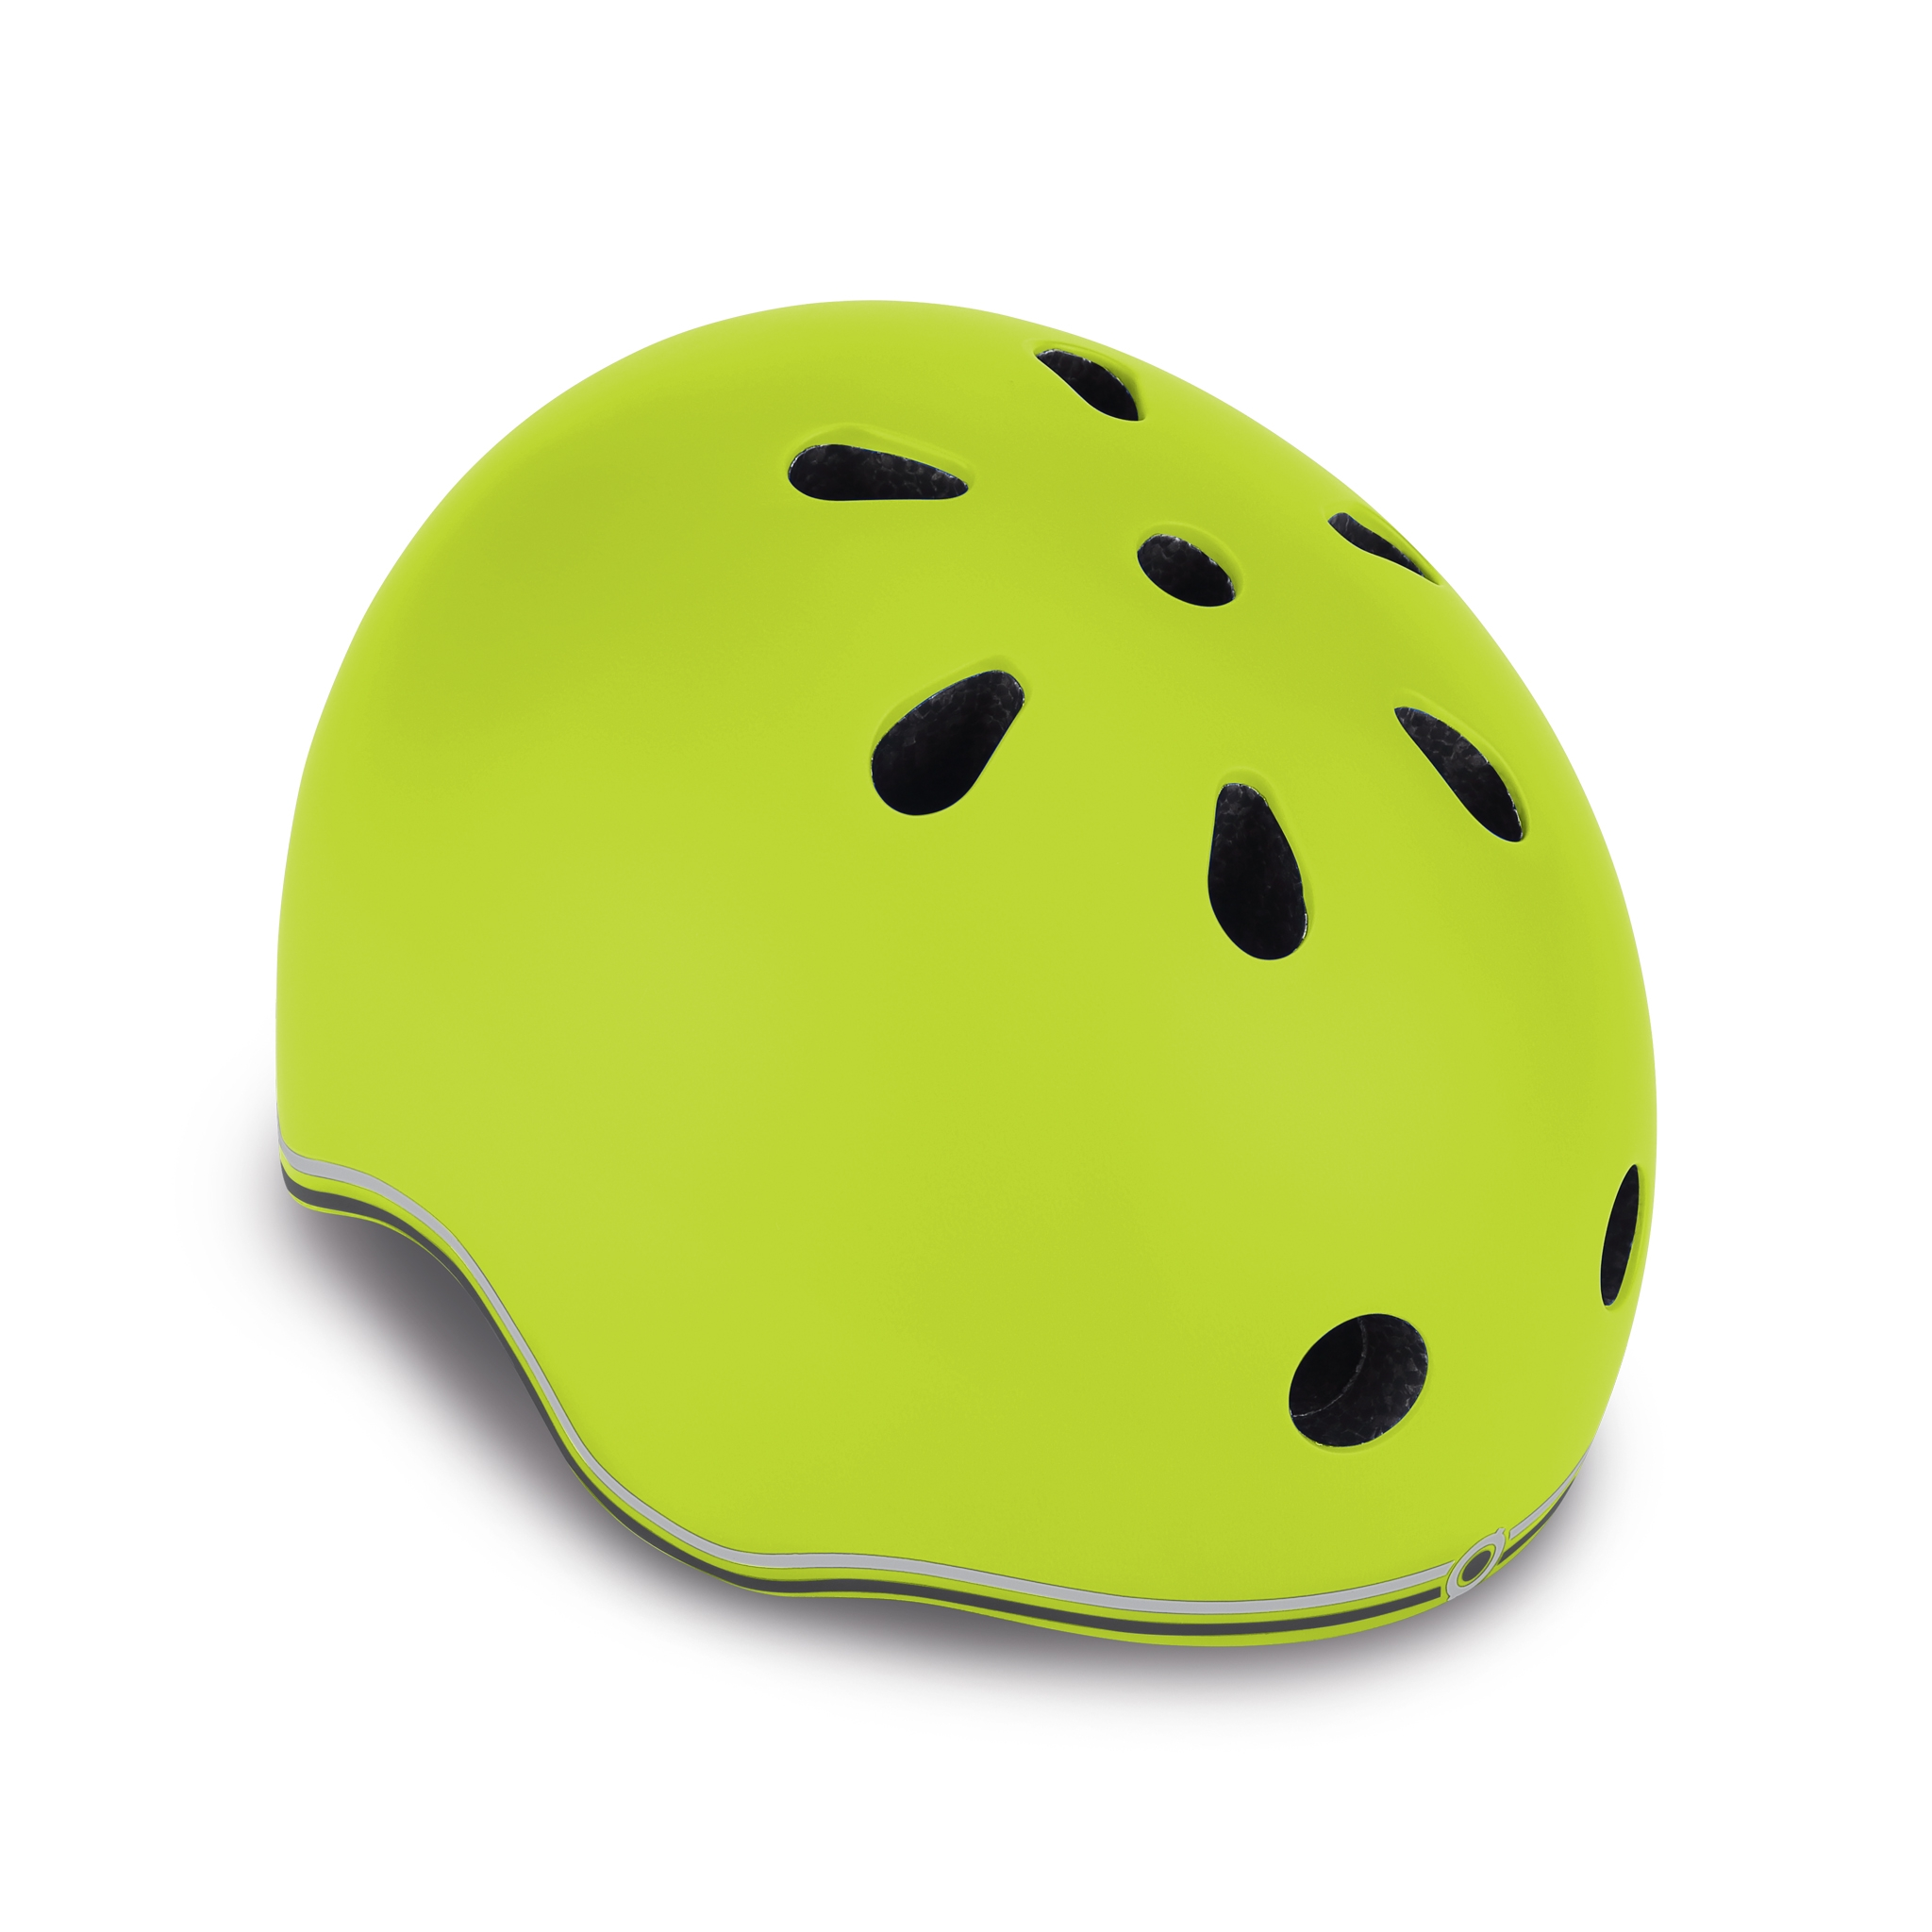 EVO-helmets-scooter-helmets-for-toddlers-in-mold-polycarbonate-outer-shell-lime-green 0